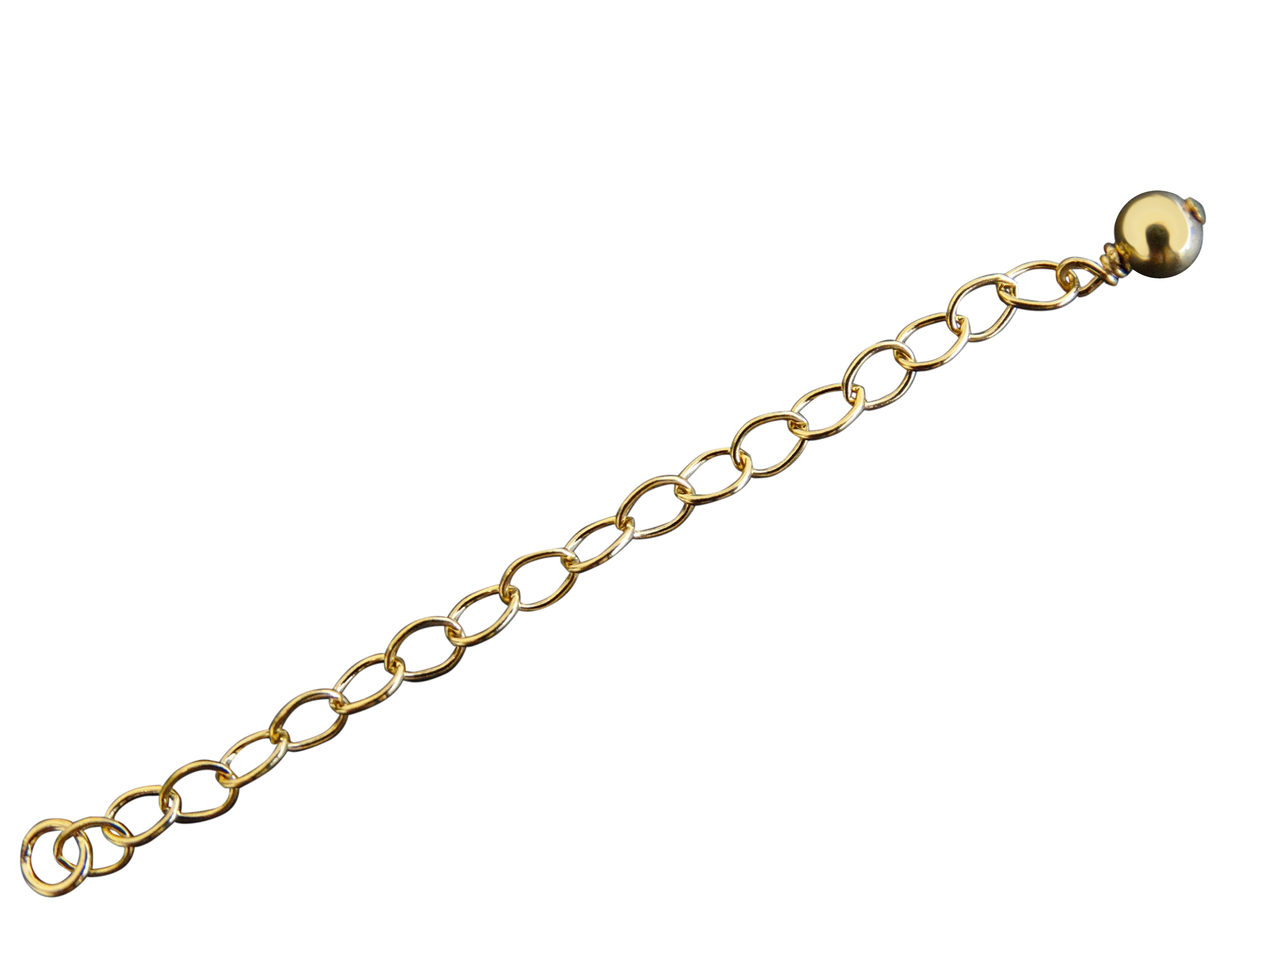 ''2'''' Extender for Gold Filled JEWELRY Chain - 14/20 GF''